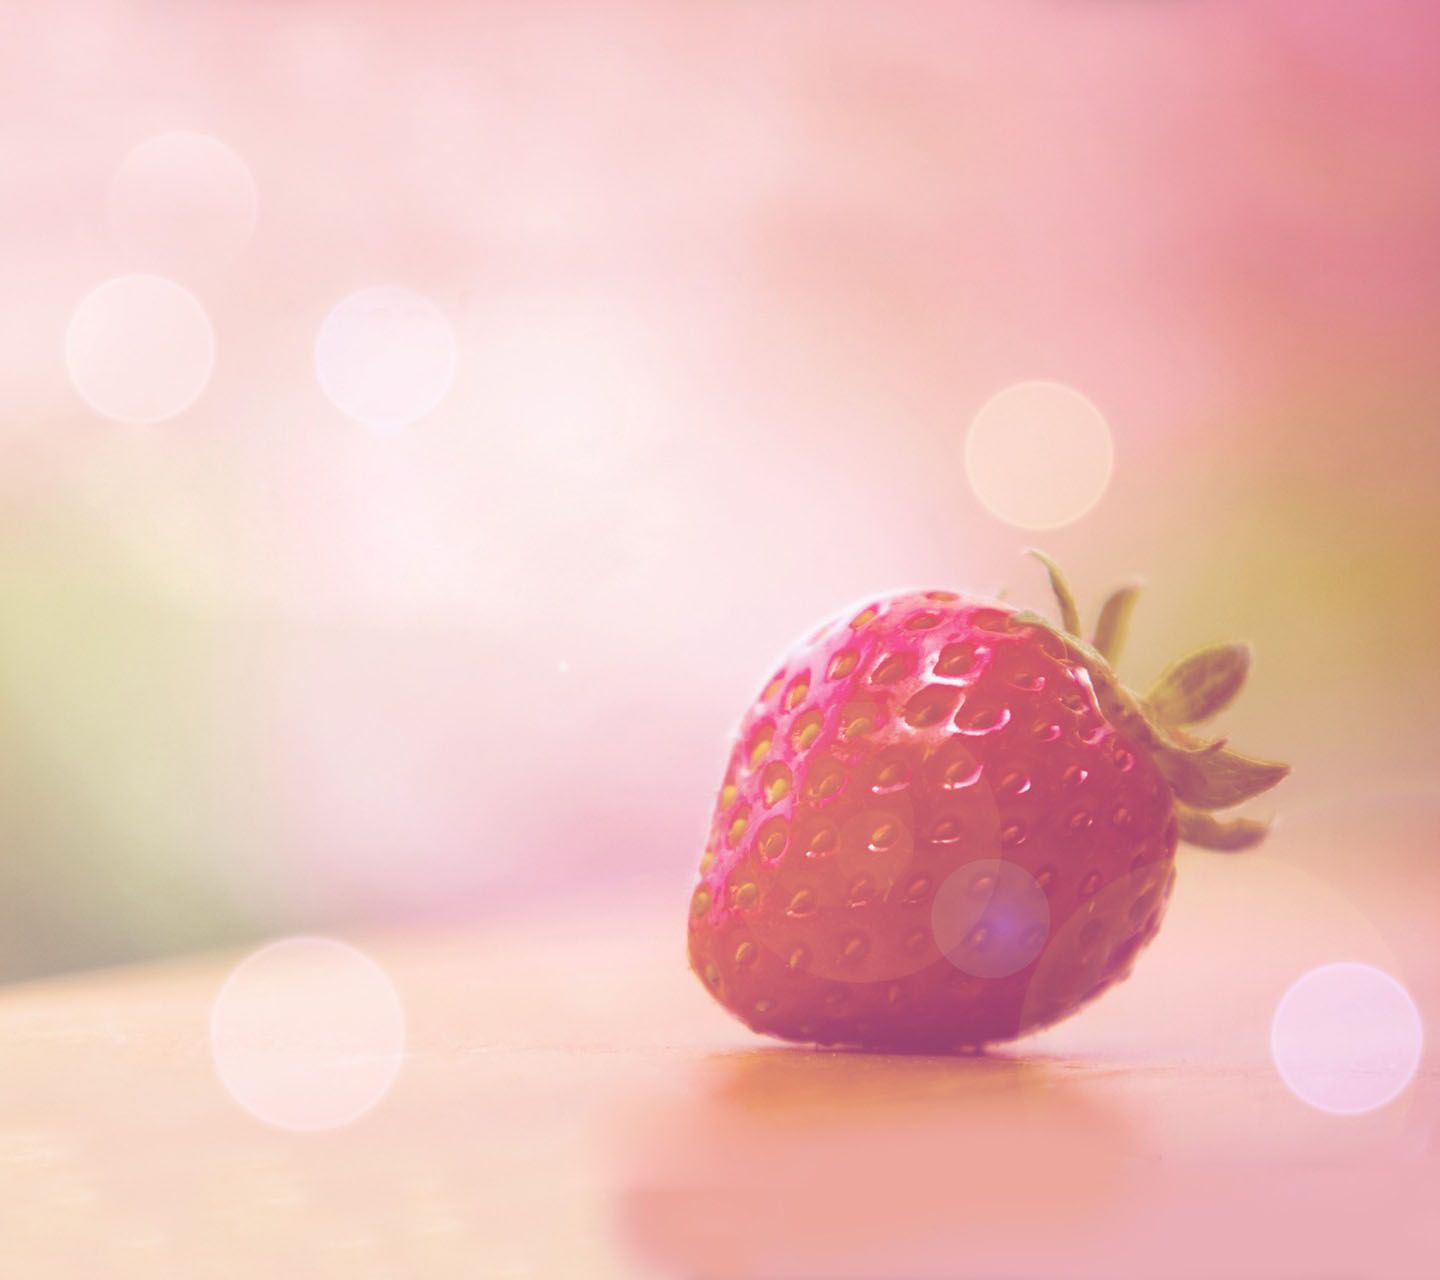 Pink Strawberry Wallpaper